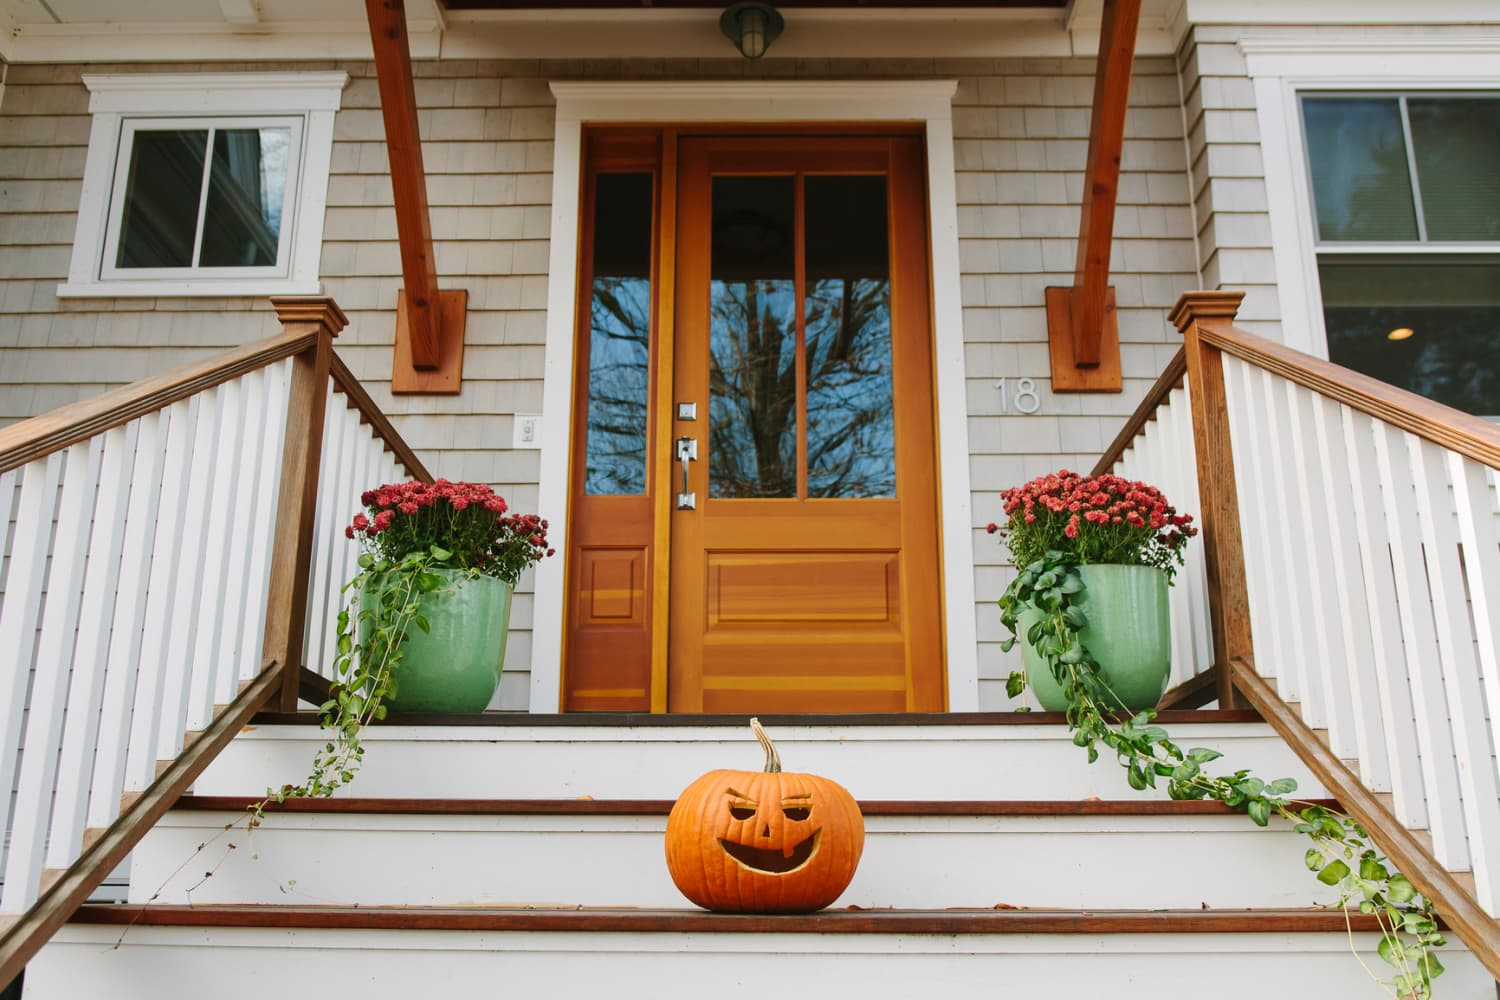 Buying a Home in October? These Inspections Cover the Paranormal, Too